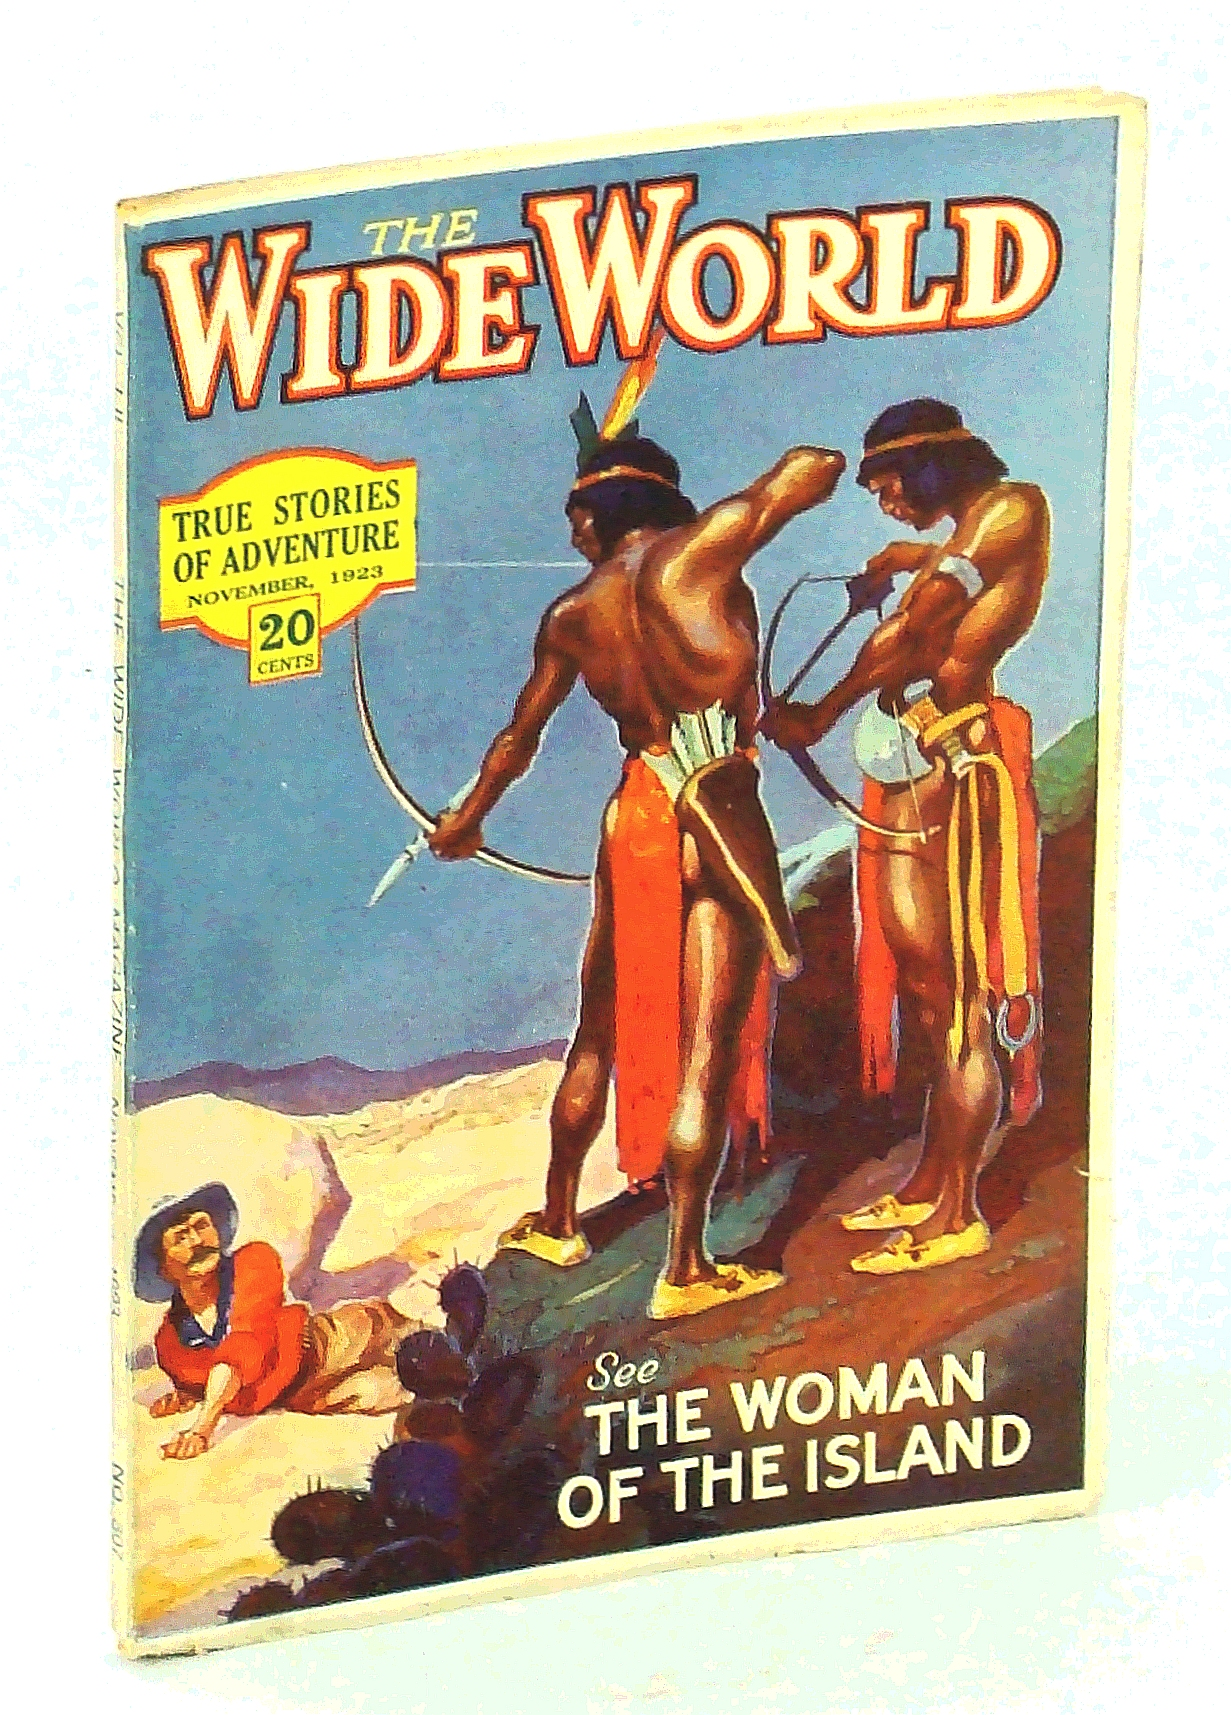 Image for The Wide World Magazine - True Stories of Adventure, November [Nov.] 1923, Vol. LI, No. 307: The Woman of the Island